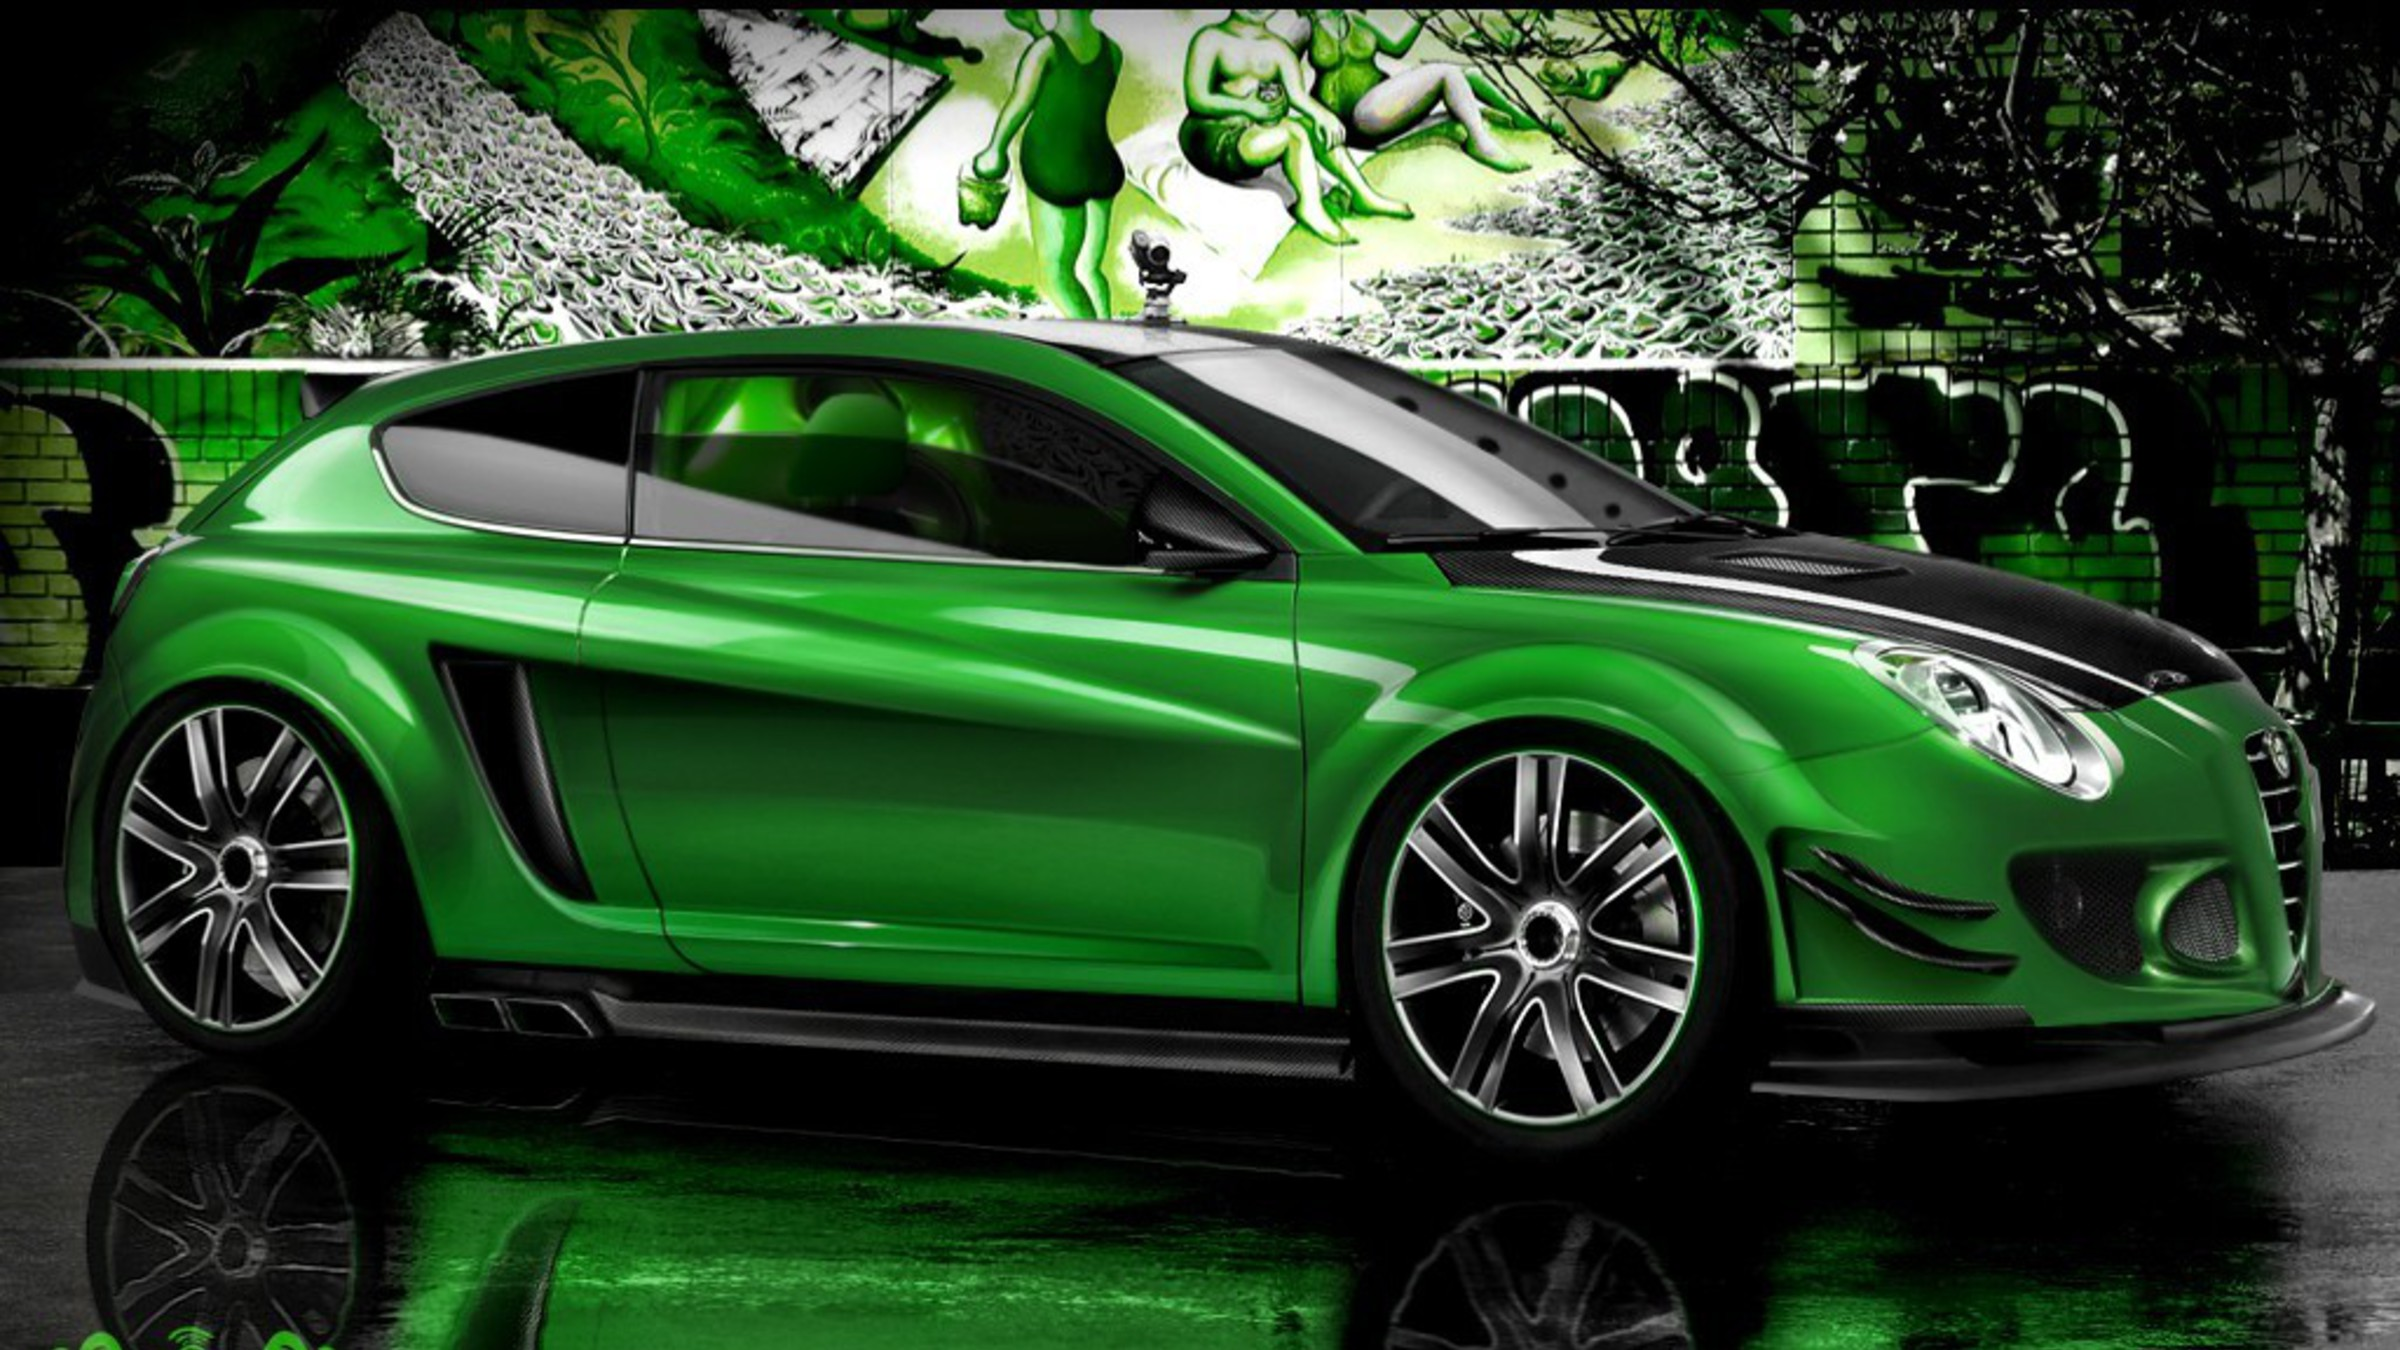 Green Cars Alfa Romeo Tuning 3d Wallpaper Allwallpaper In 14392